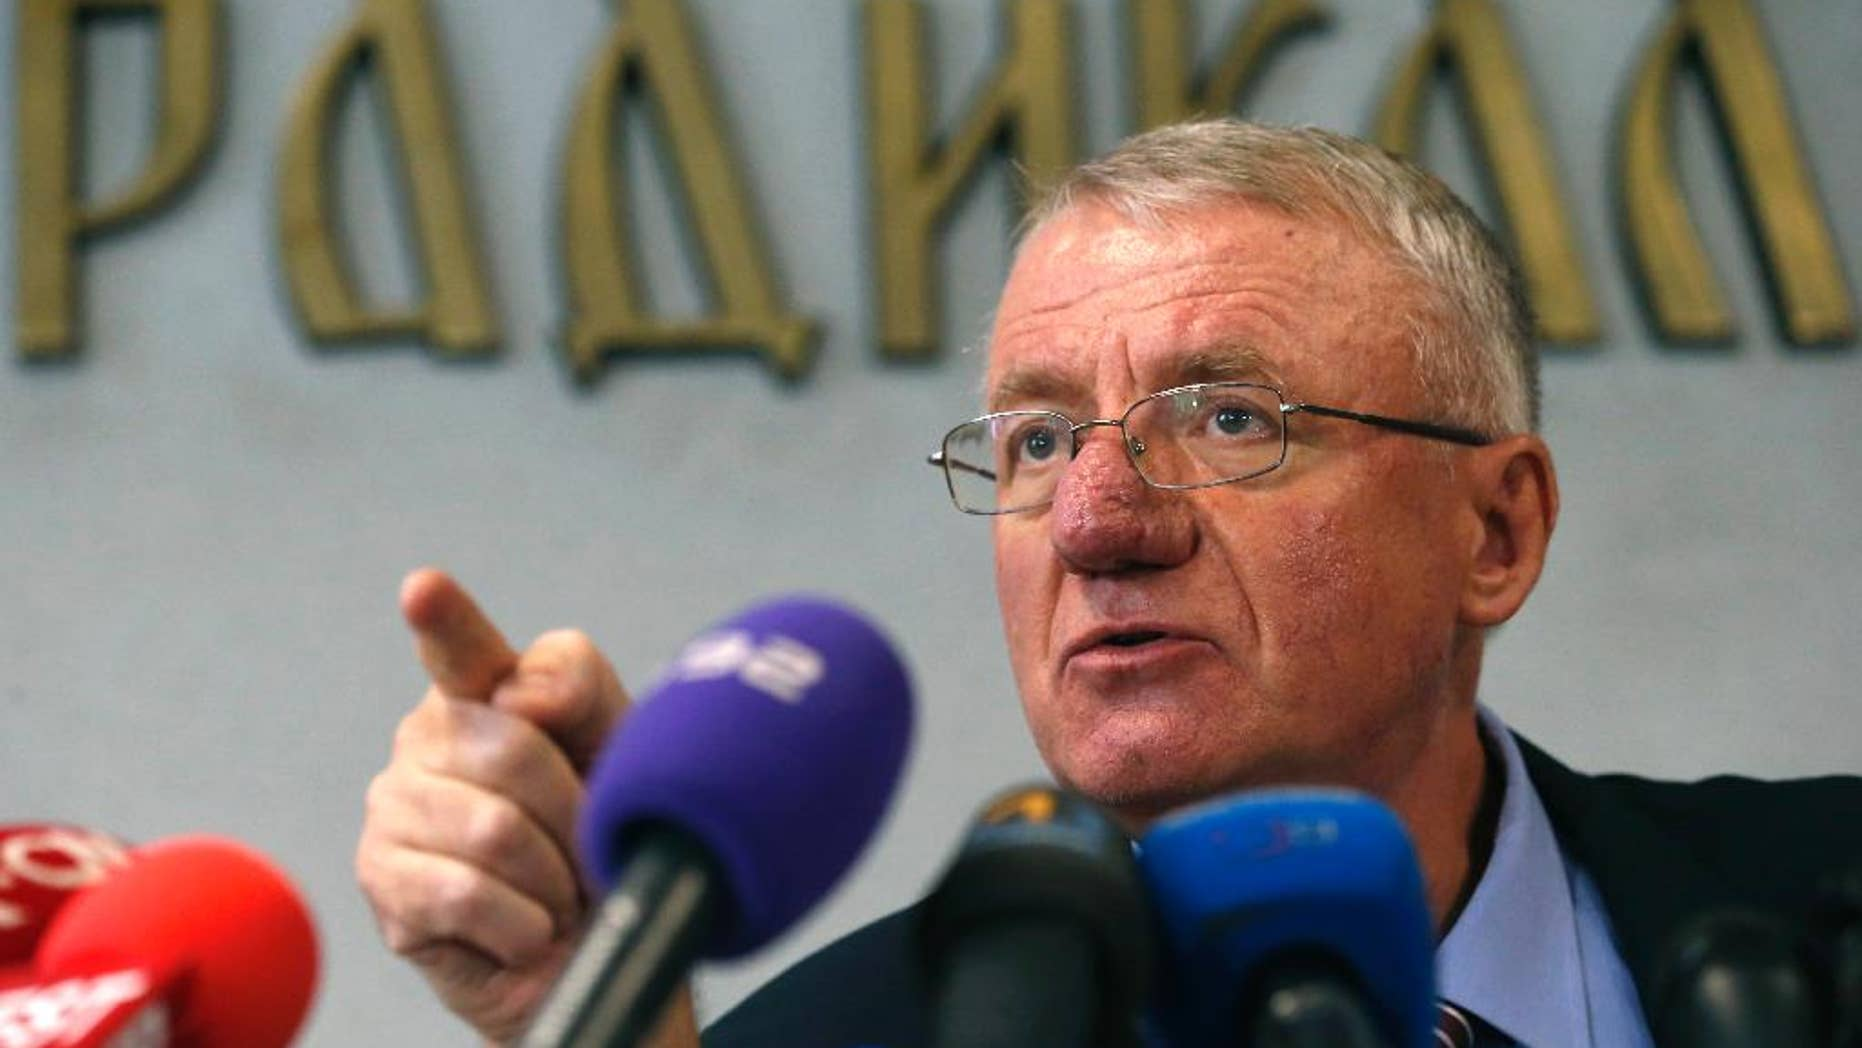 FILE - This is a Thursday, Nov. 13, 2014  file photo of Serbian far-right leader Vojislav Seselj as he speaks during a press conference in Belgrade, Serbia.  Appeals judges at the Yugoslav war crimes tribunal ruled Monday March 30, 2015 that Serbian far-right leader Vojislav Seselj has breached conditions of his provisional release and must return to the court's cellblock in The Hague. (AP Photo/Darko Vojinovic, File)